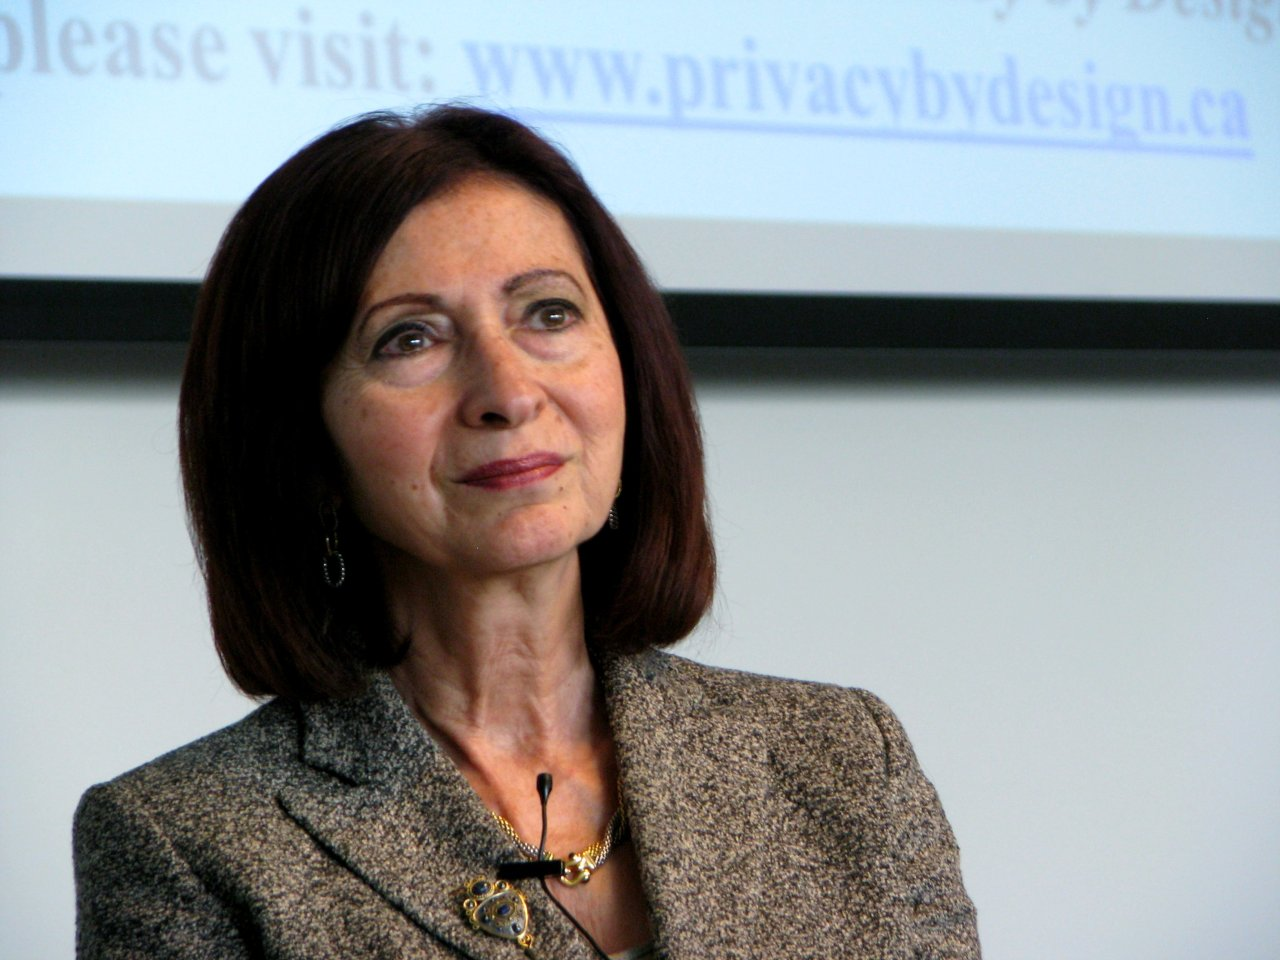 "Ann Cavoukian, Ph.D. Ontario's Information and Privacy Commissioner delivered the keynote speech ""Access by Design - Time To Change the Paradigm"" at the GO Open Data Conference in Kitchener, on May 11th, 2013.   Cavoukian has been working to promote the idea that privacy for individuals must be the default, and has introduced Privacy by Design to promote personal security and protect citizens from  Surveillance By Design. Although Dr. Cavoukian advocates for open data, I couldn't find much in the way of free culture photos of her floating around the Internet. I've rectified that deficiency by uploading this image to the Wikimedia Commons, and posting it on her Wikipedia page. I've more photos of Ann Cavoukian and other GO Open Data presemters I'll be posting on  visual free libre over the upcoming weeks."